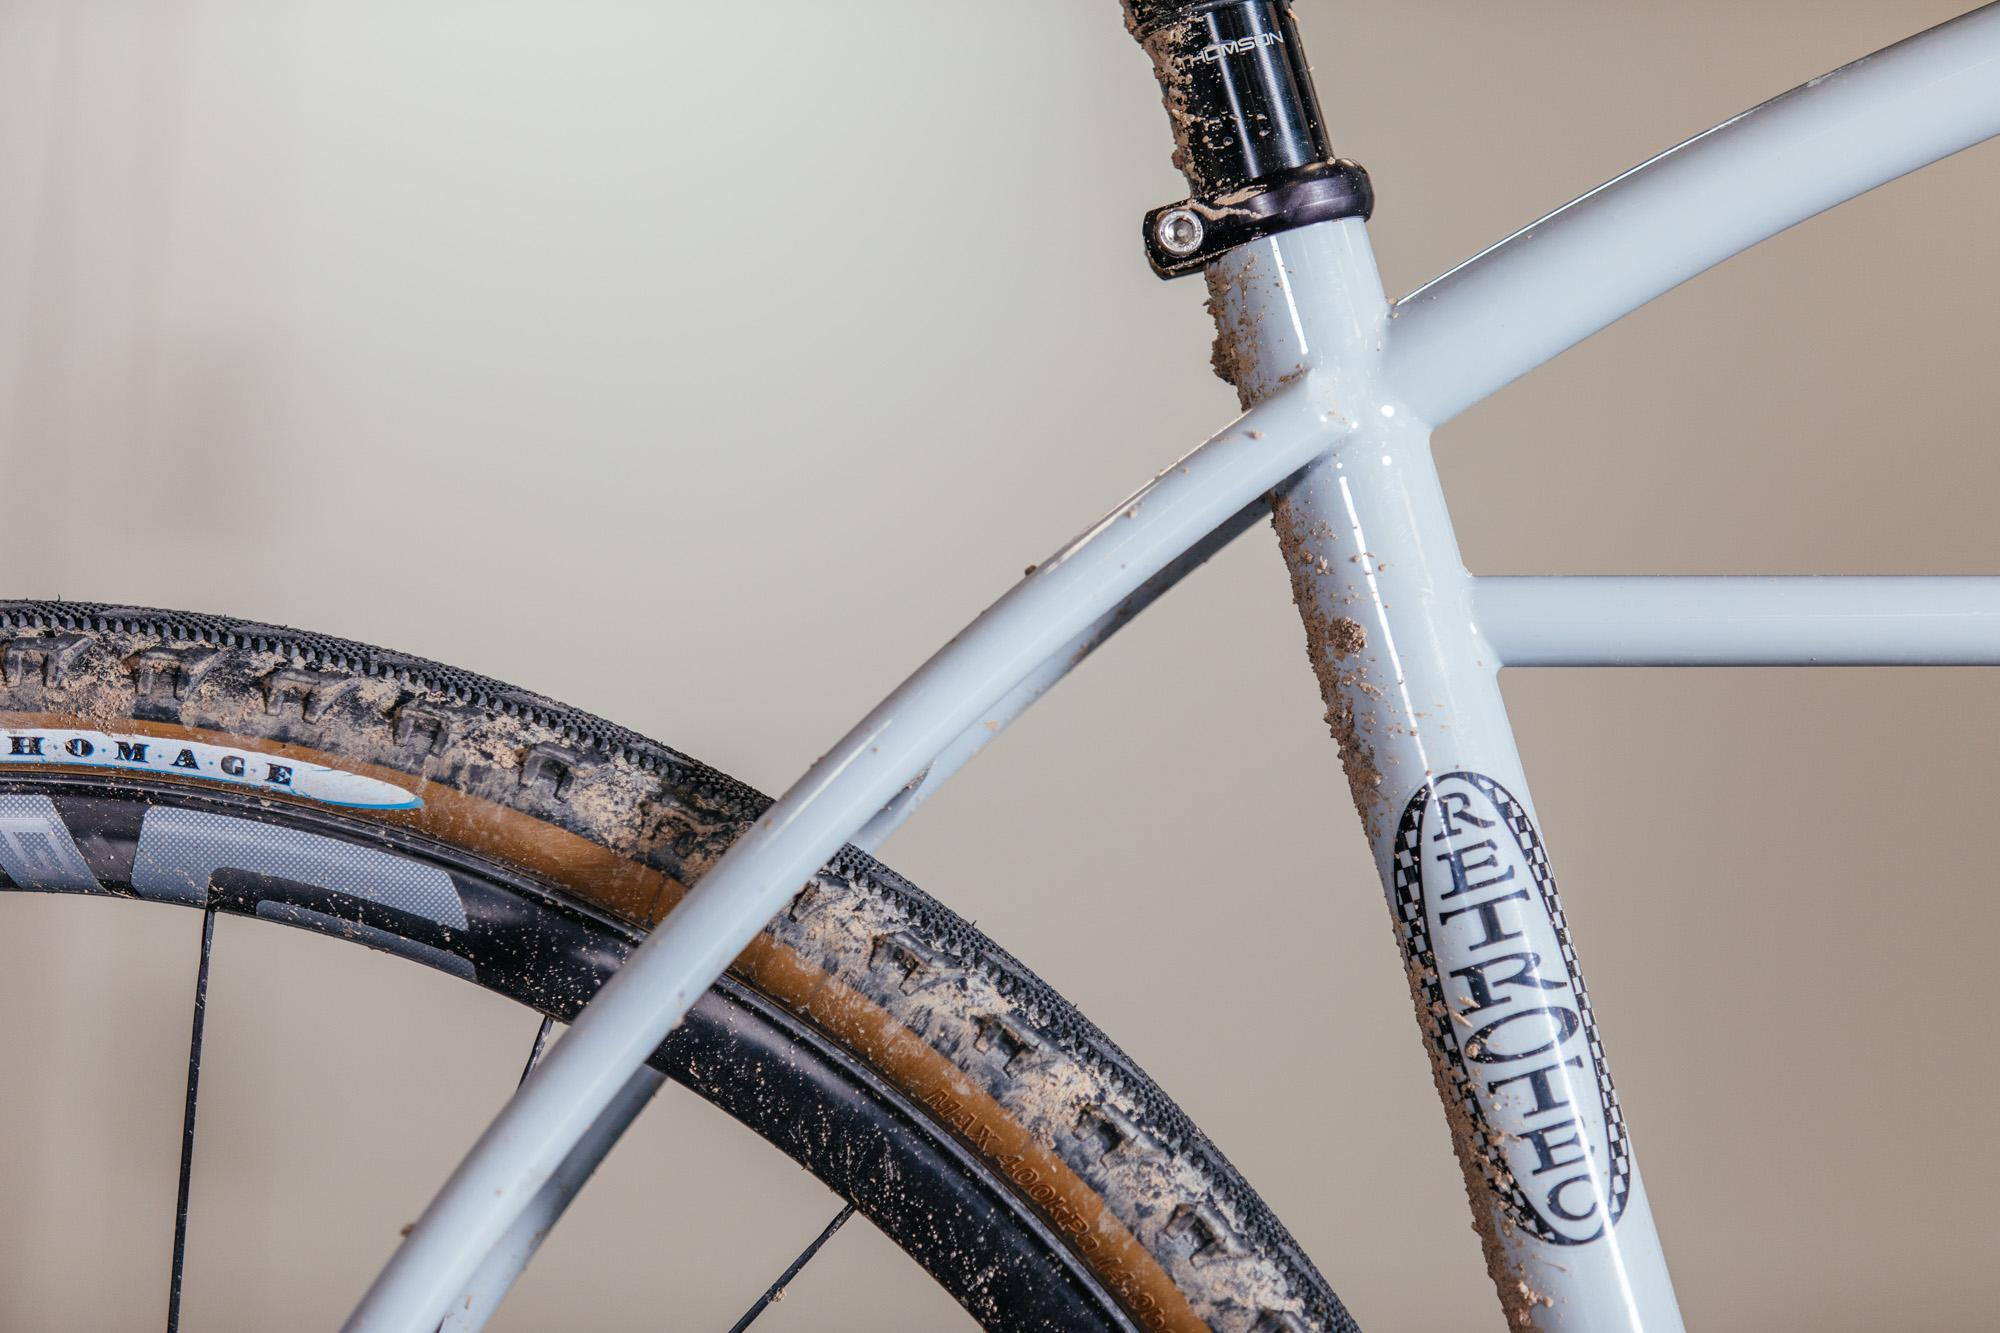 Retrotec Gravel Bike